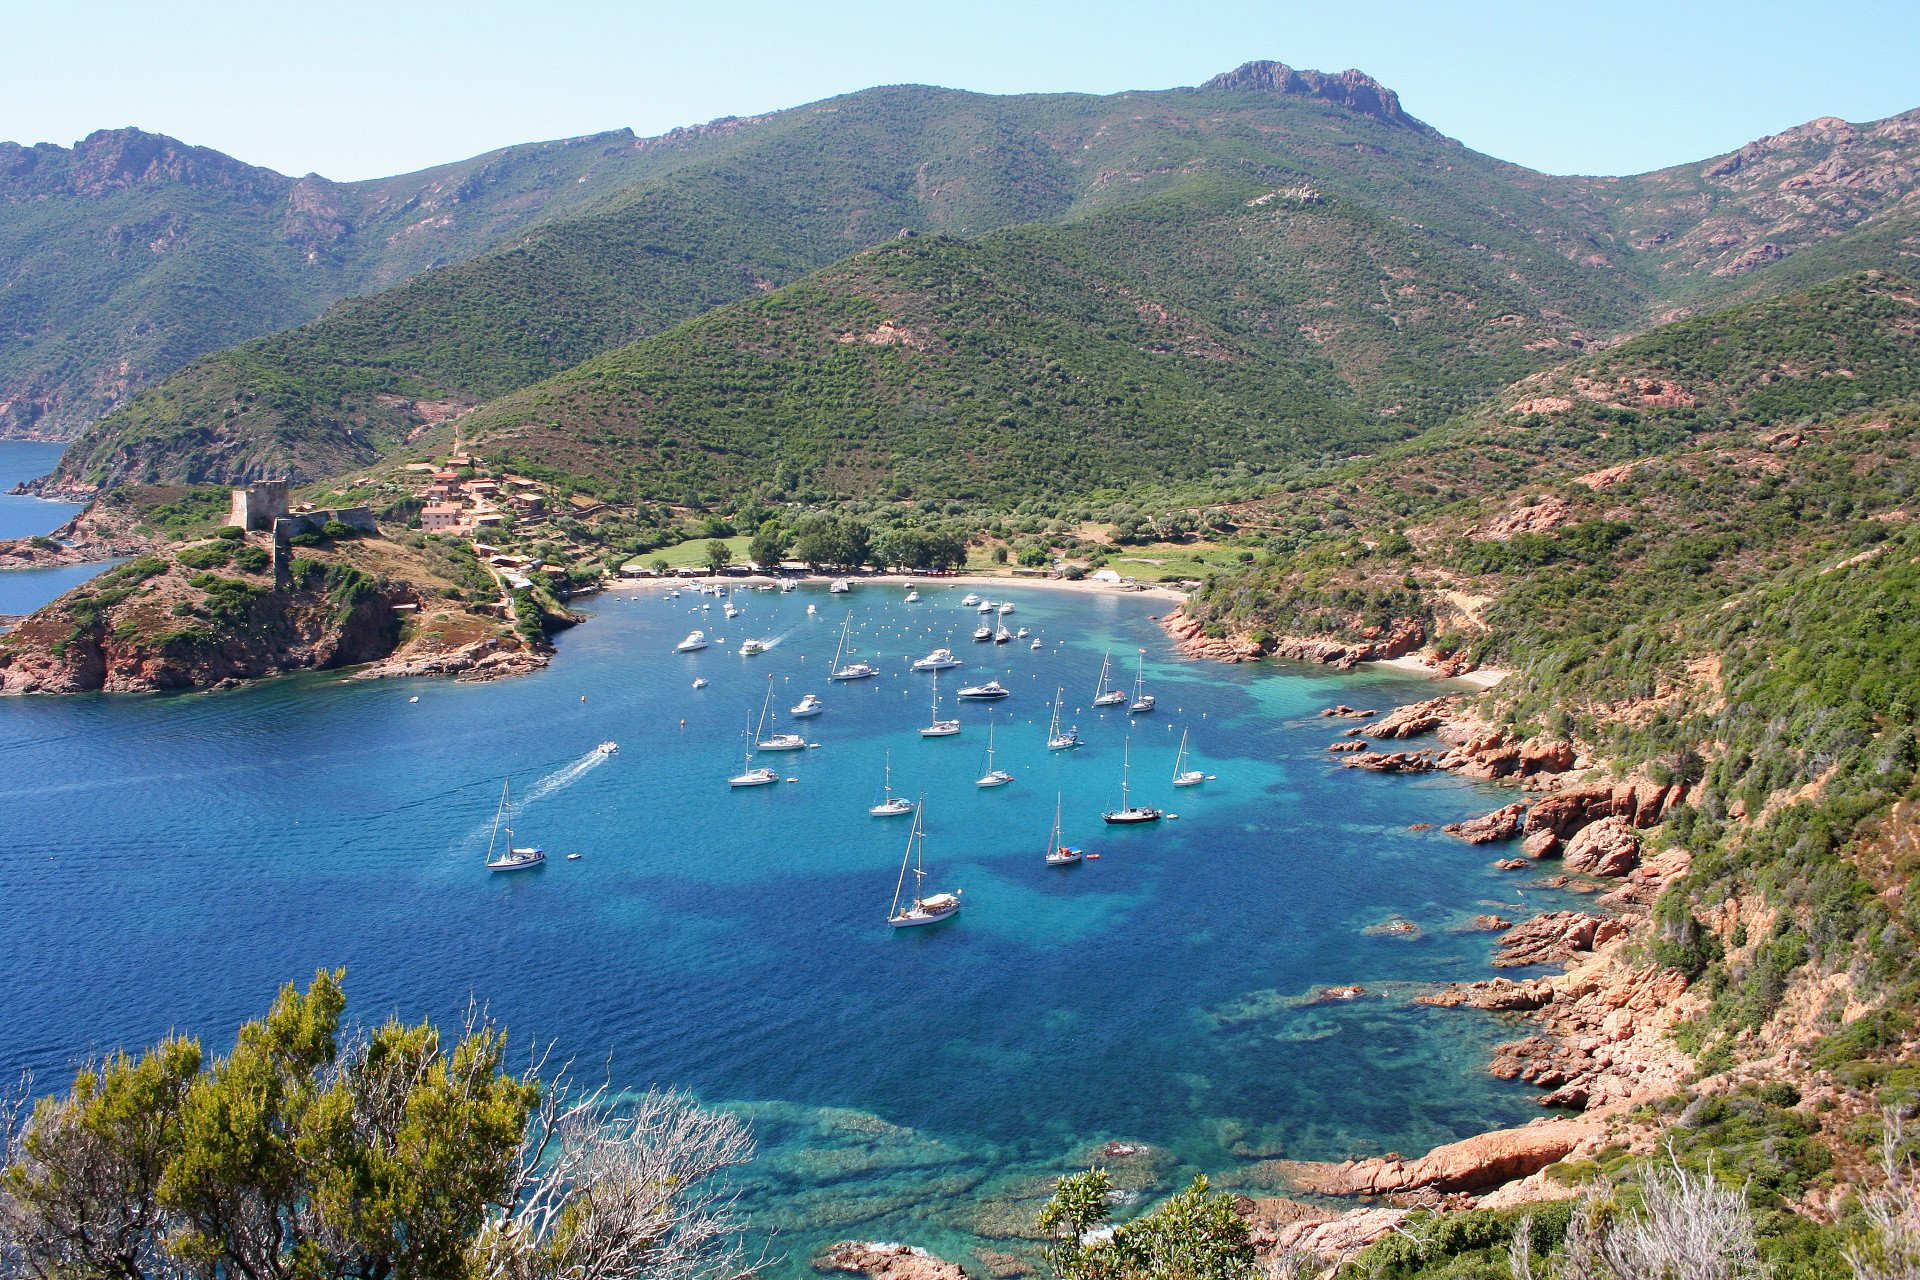 Sailing boats sheltering in a clear water creek along the Corsican coast